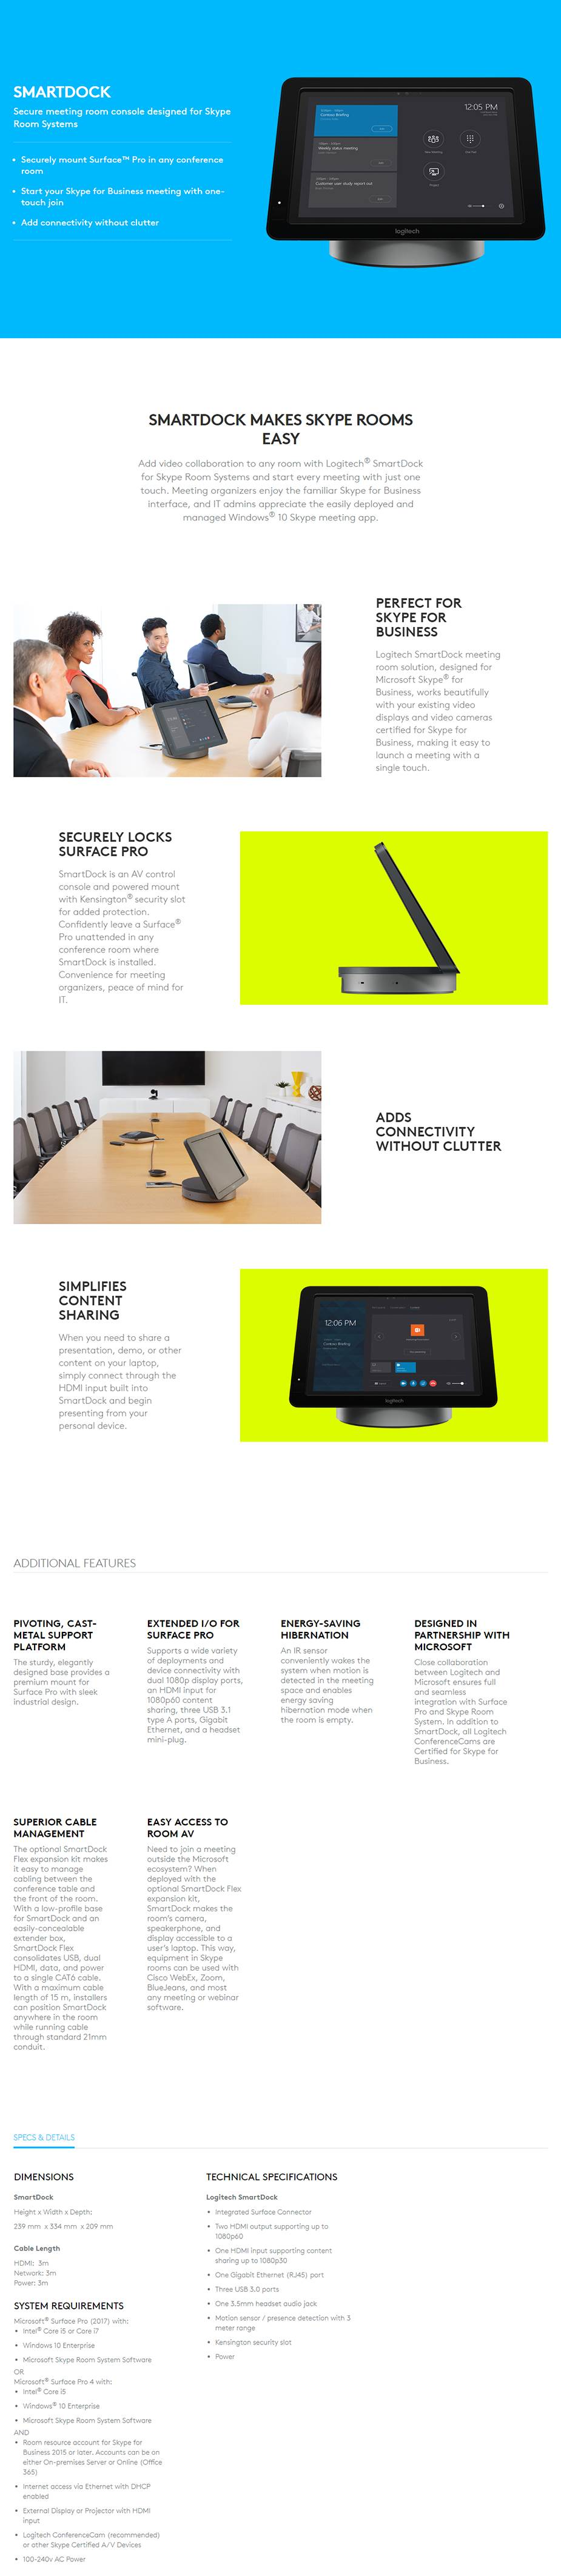 Logitech Smartdock Meeting Room Console with MeetUp